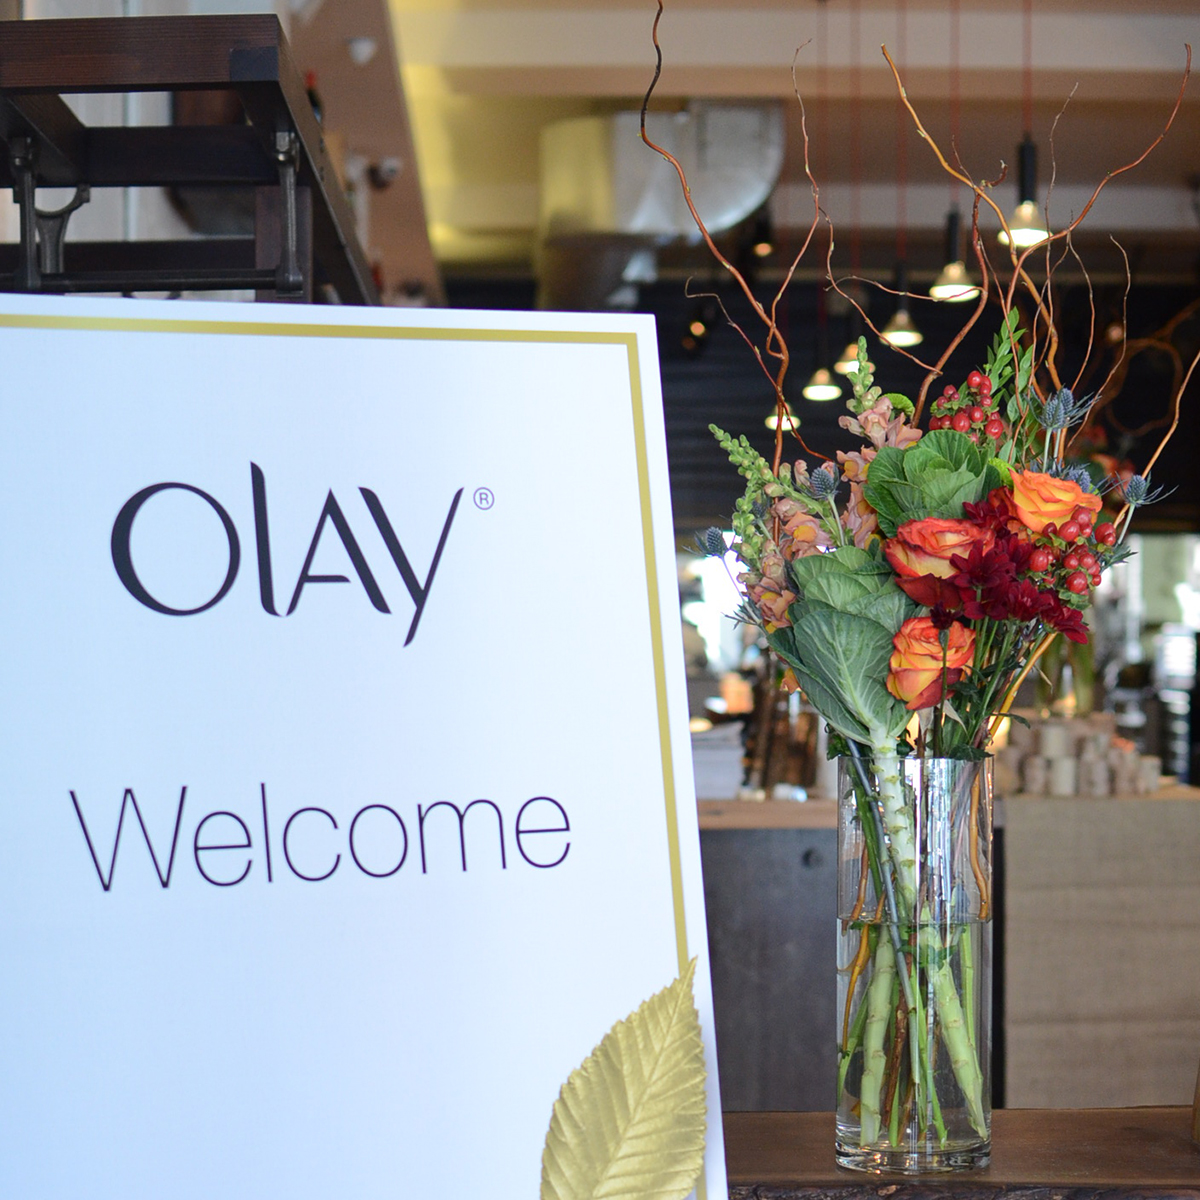 OLAY Canada product launch, October 2014. Styling: Daniel Onori/Plutino Group